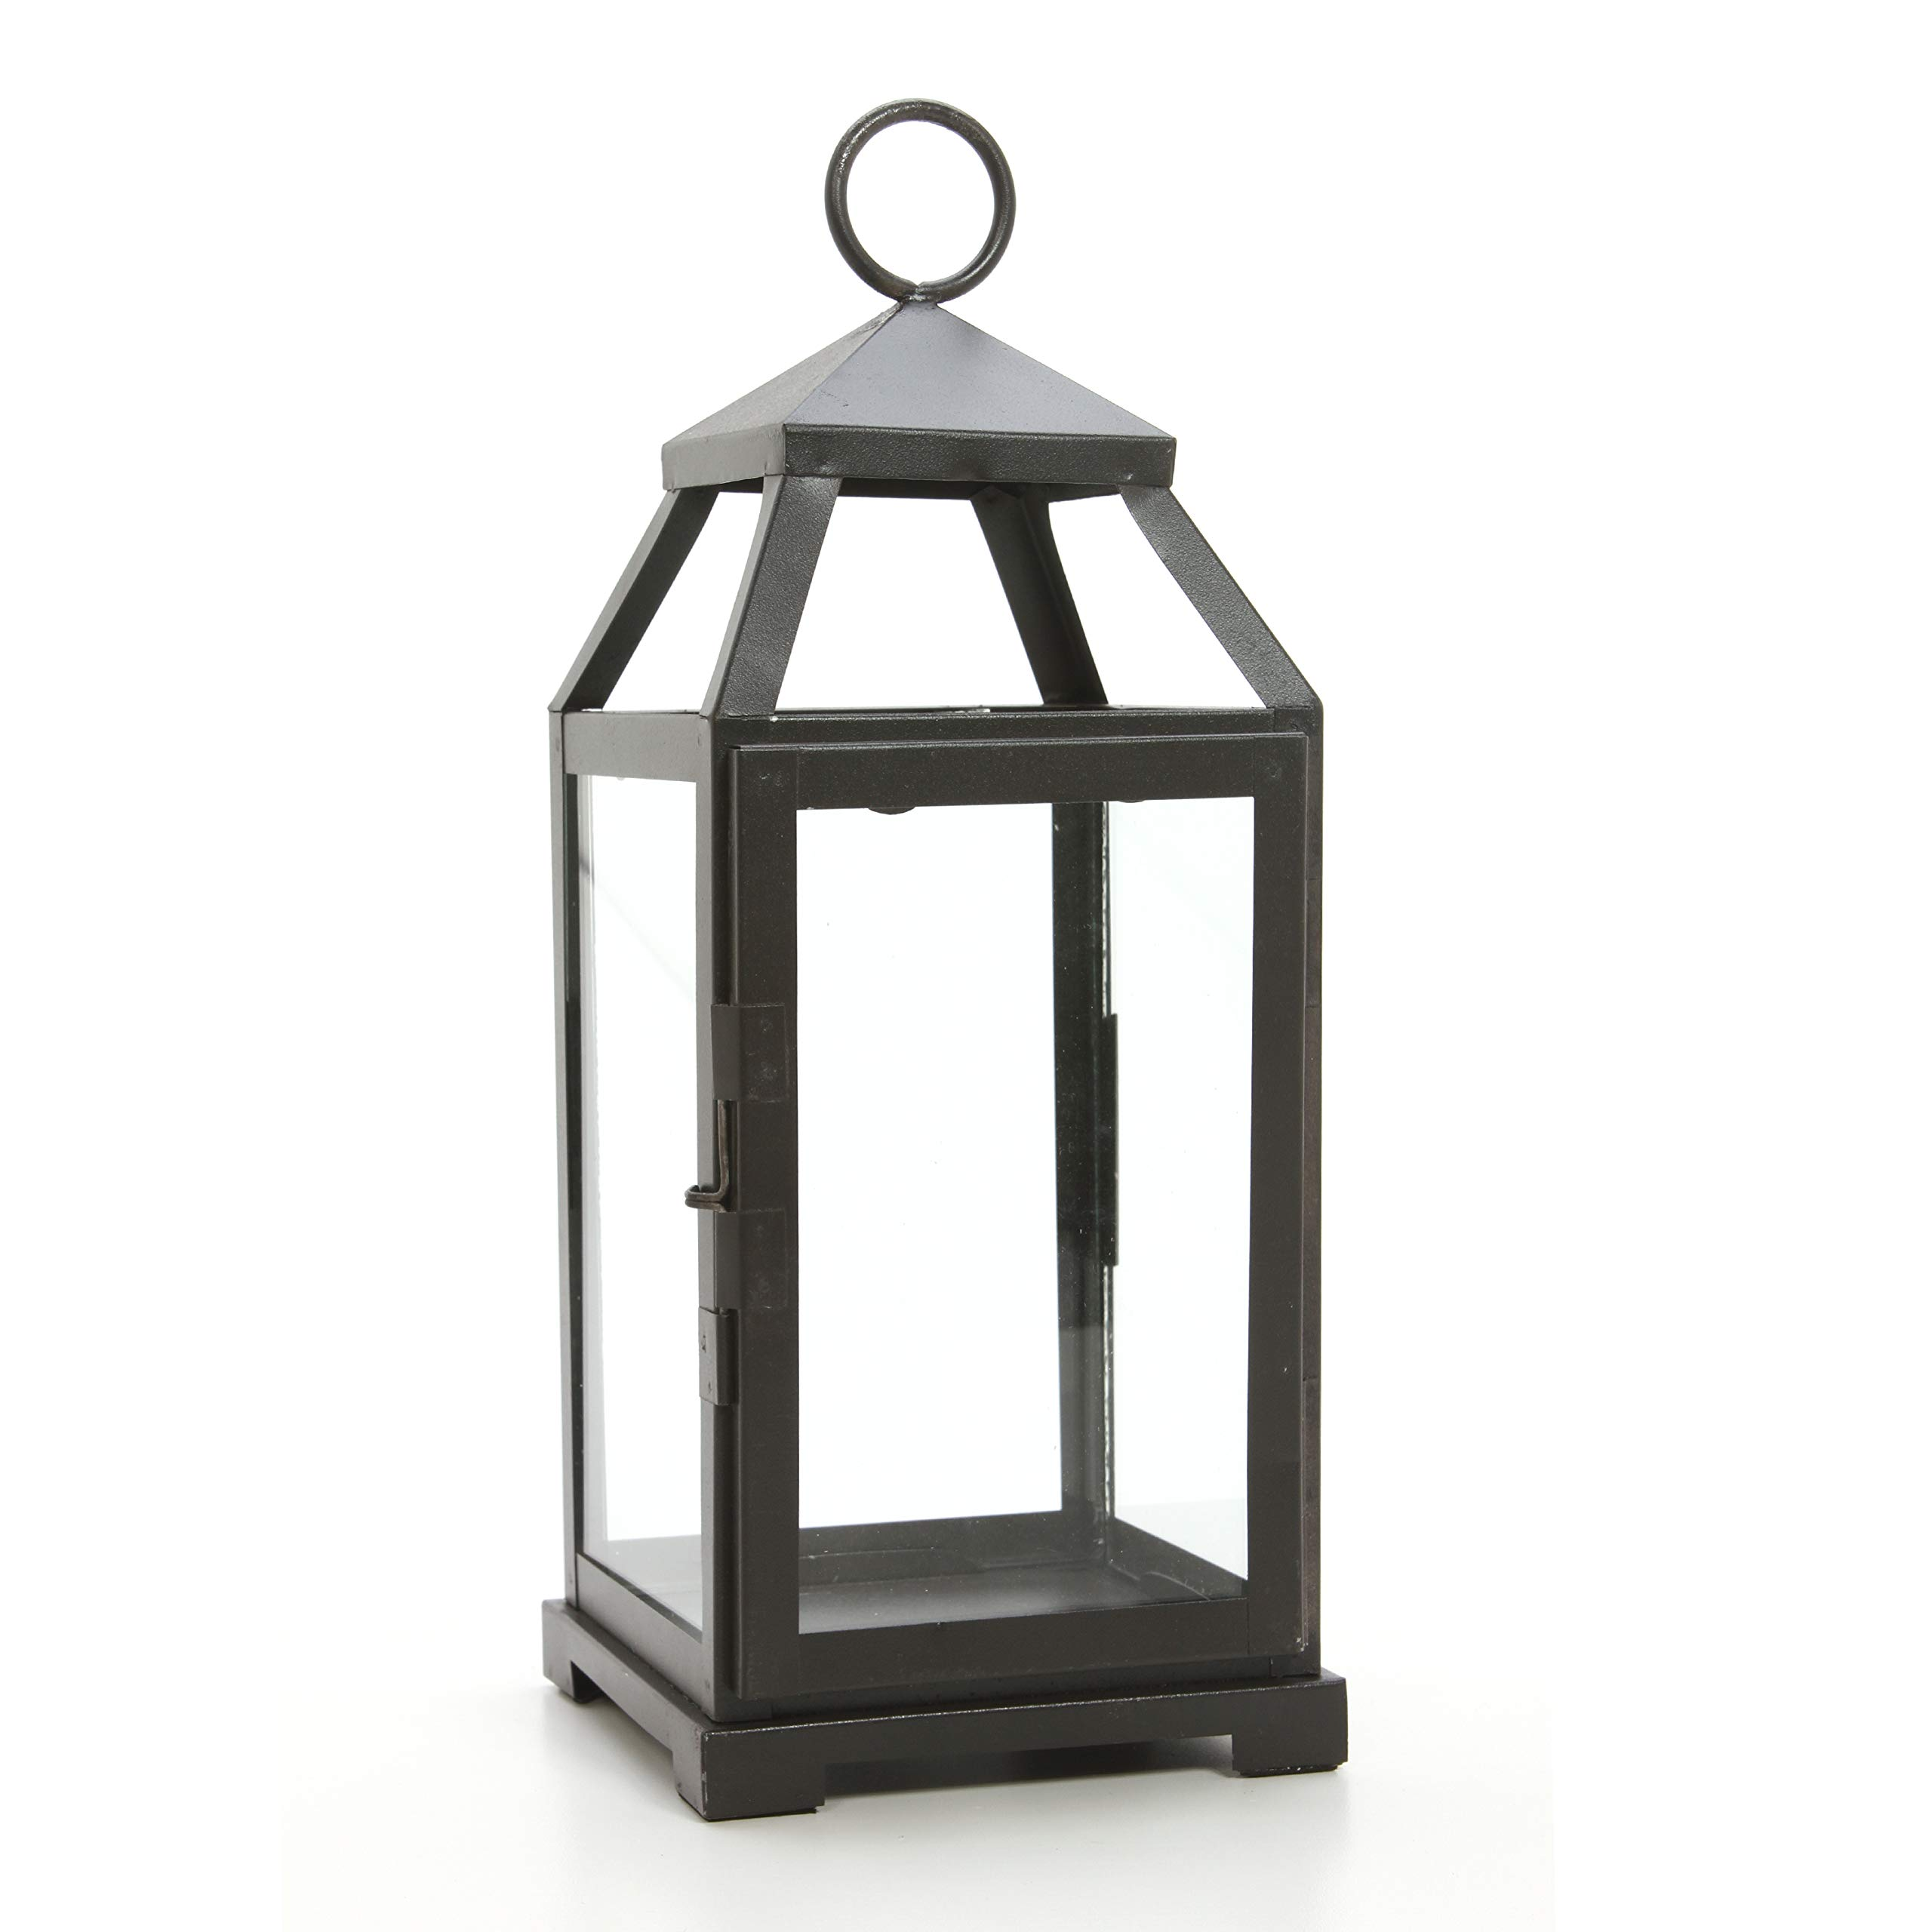 Hosley 14'' High Large Clear Glass & Iron, Classic Style Lantern. Ideal Gift for Festivities, Parties, Weddings, Aromatherapy and LED Spa Settings. 05